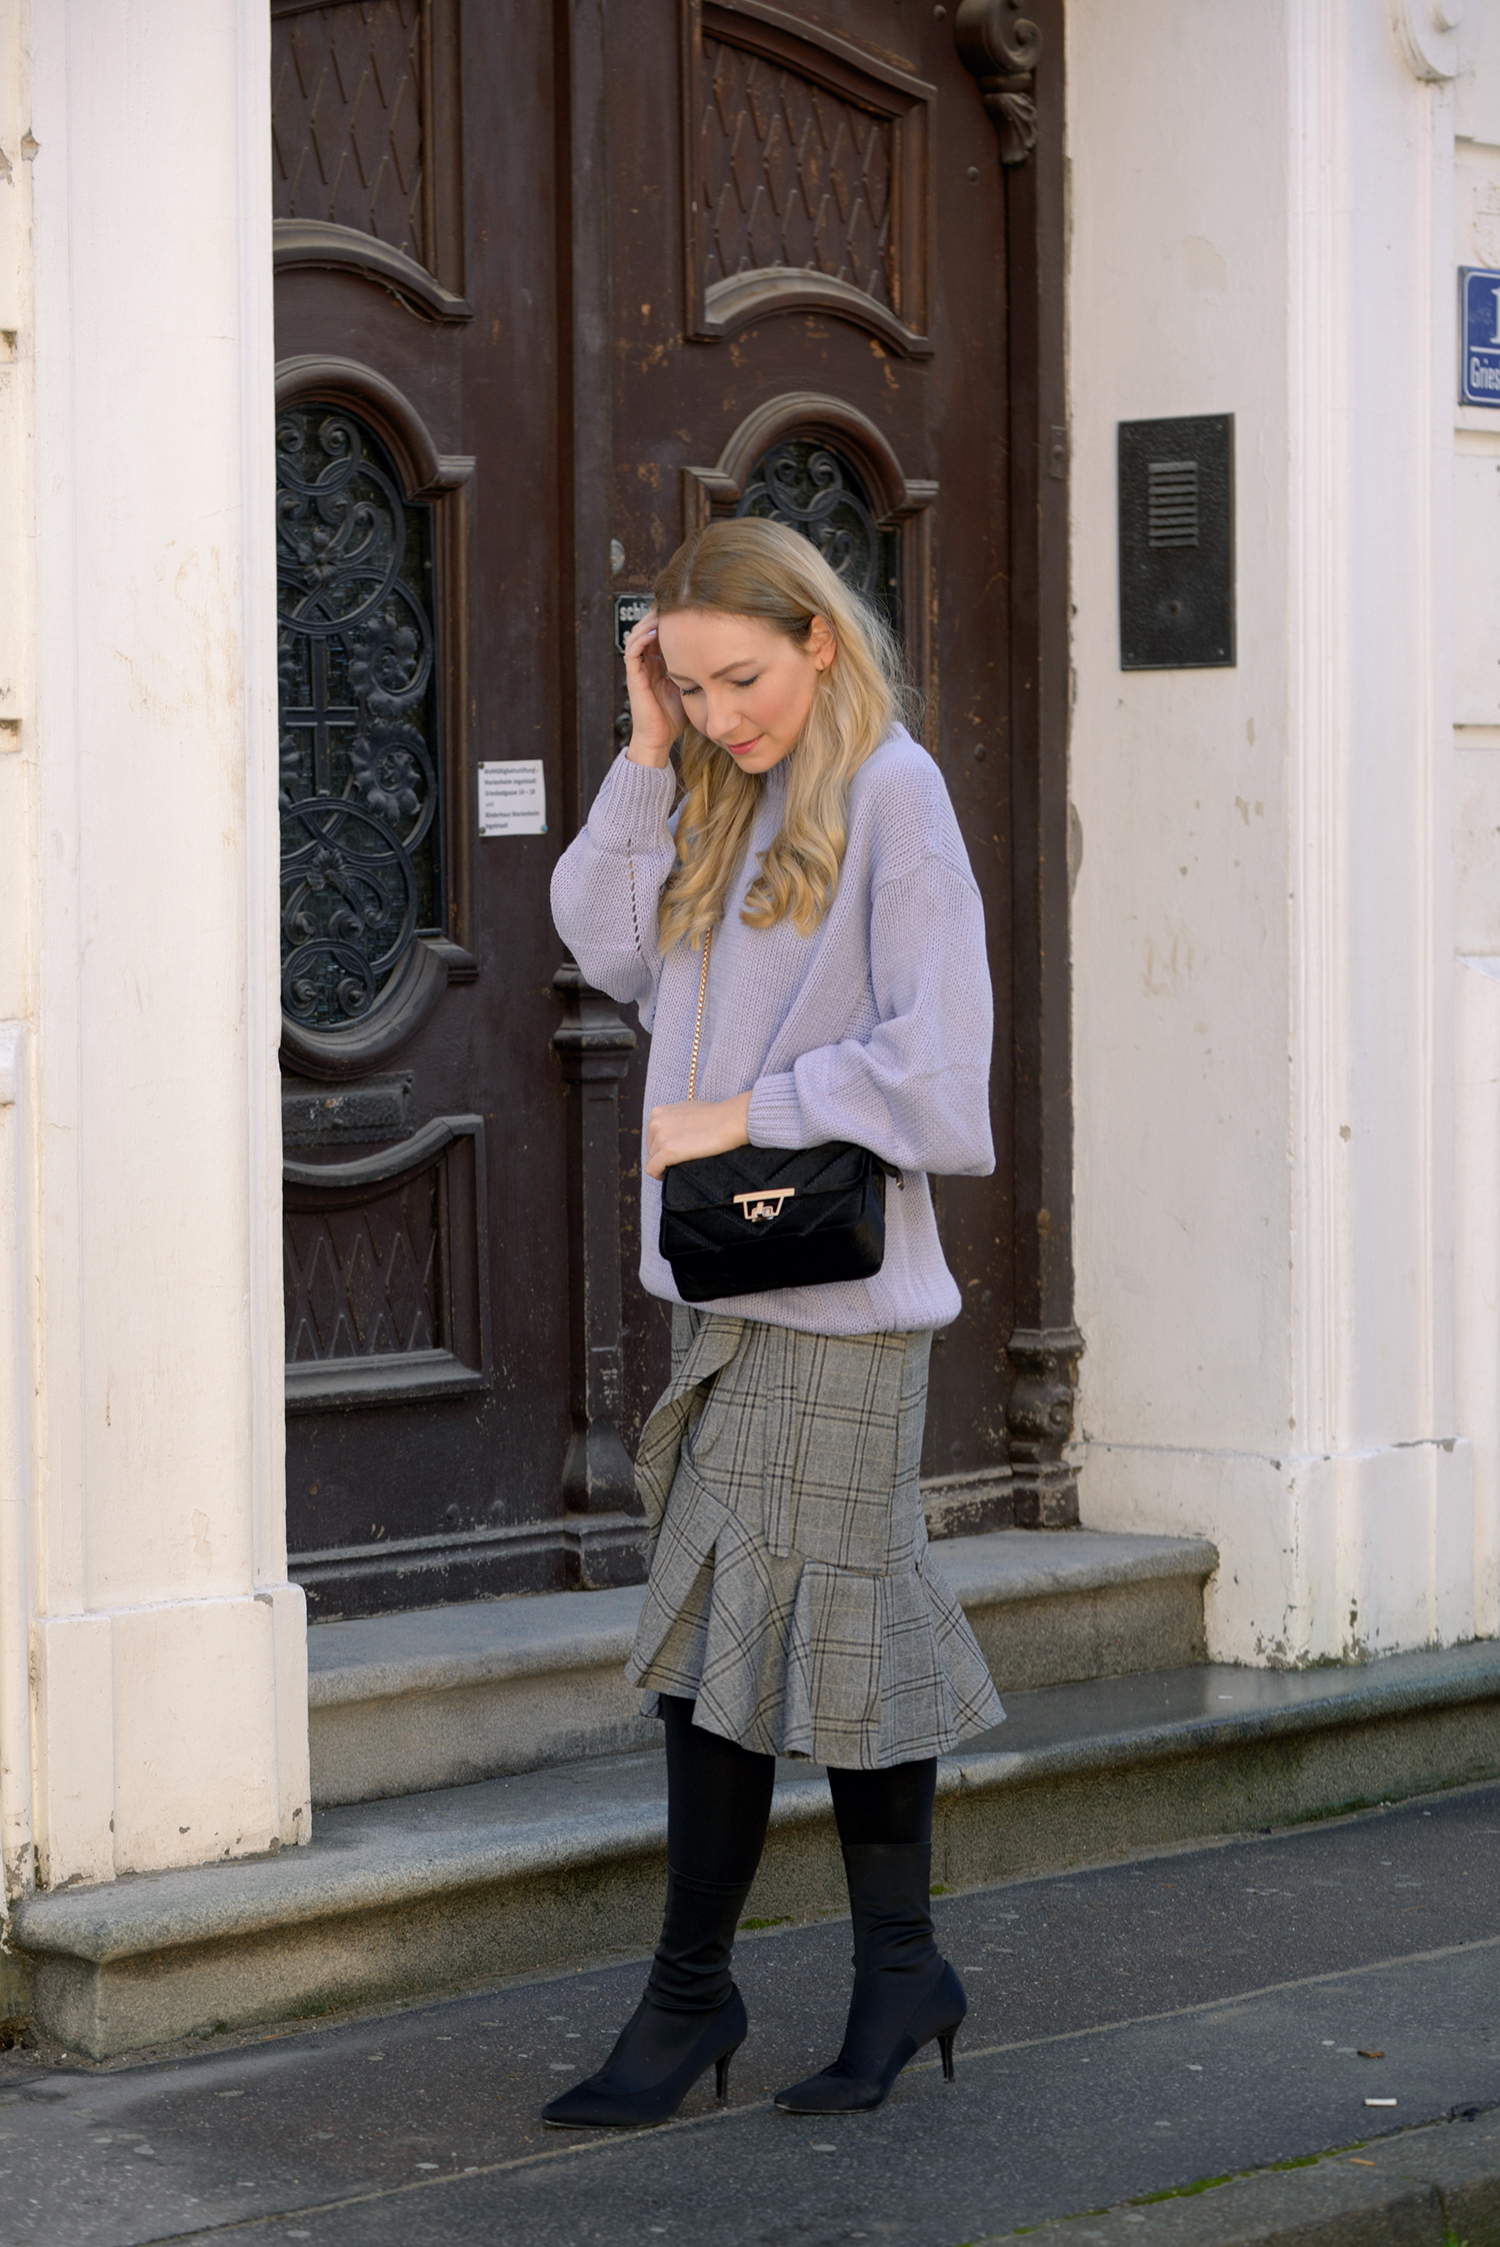 Lavender as knitwear for winter